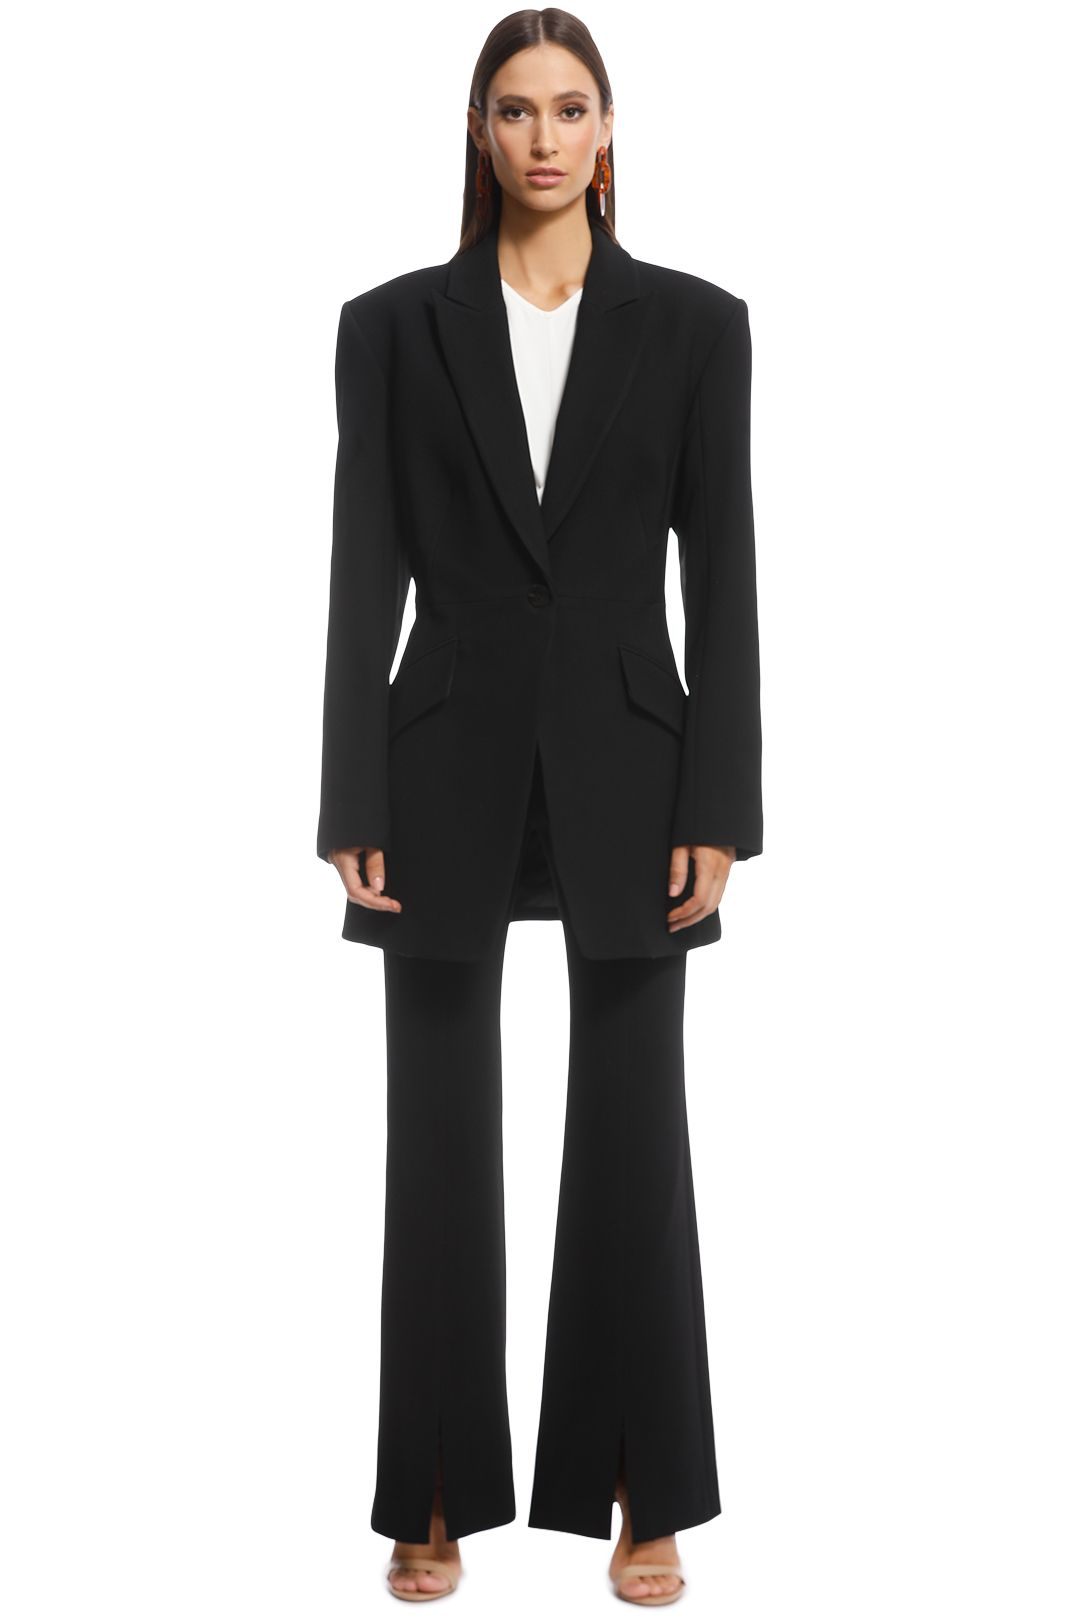 Veronika Maine - Stretch Hourglass Jacket - Black - Front